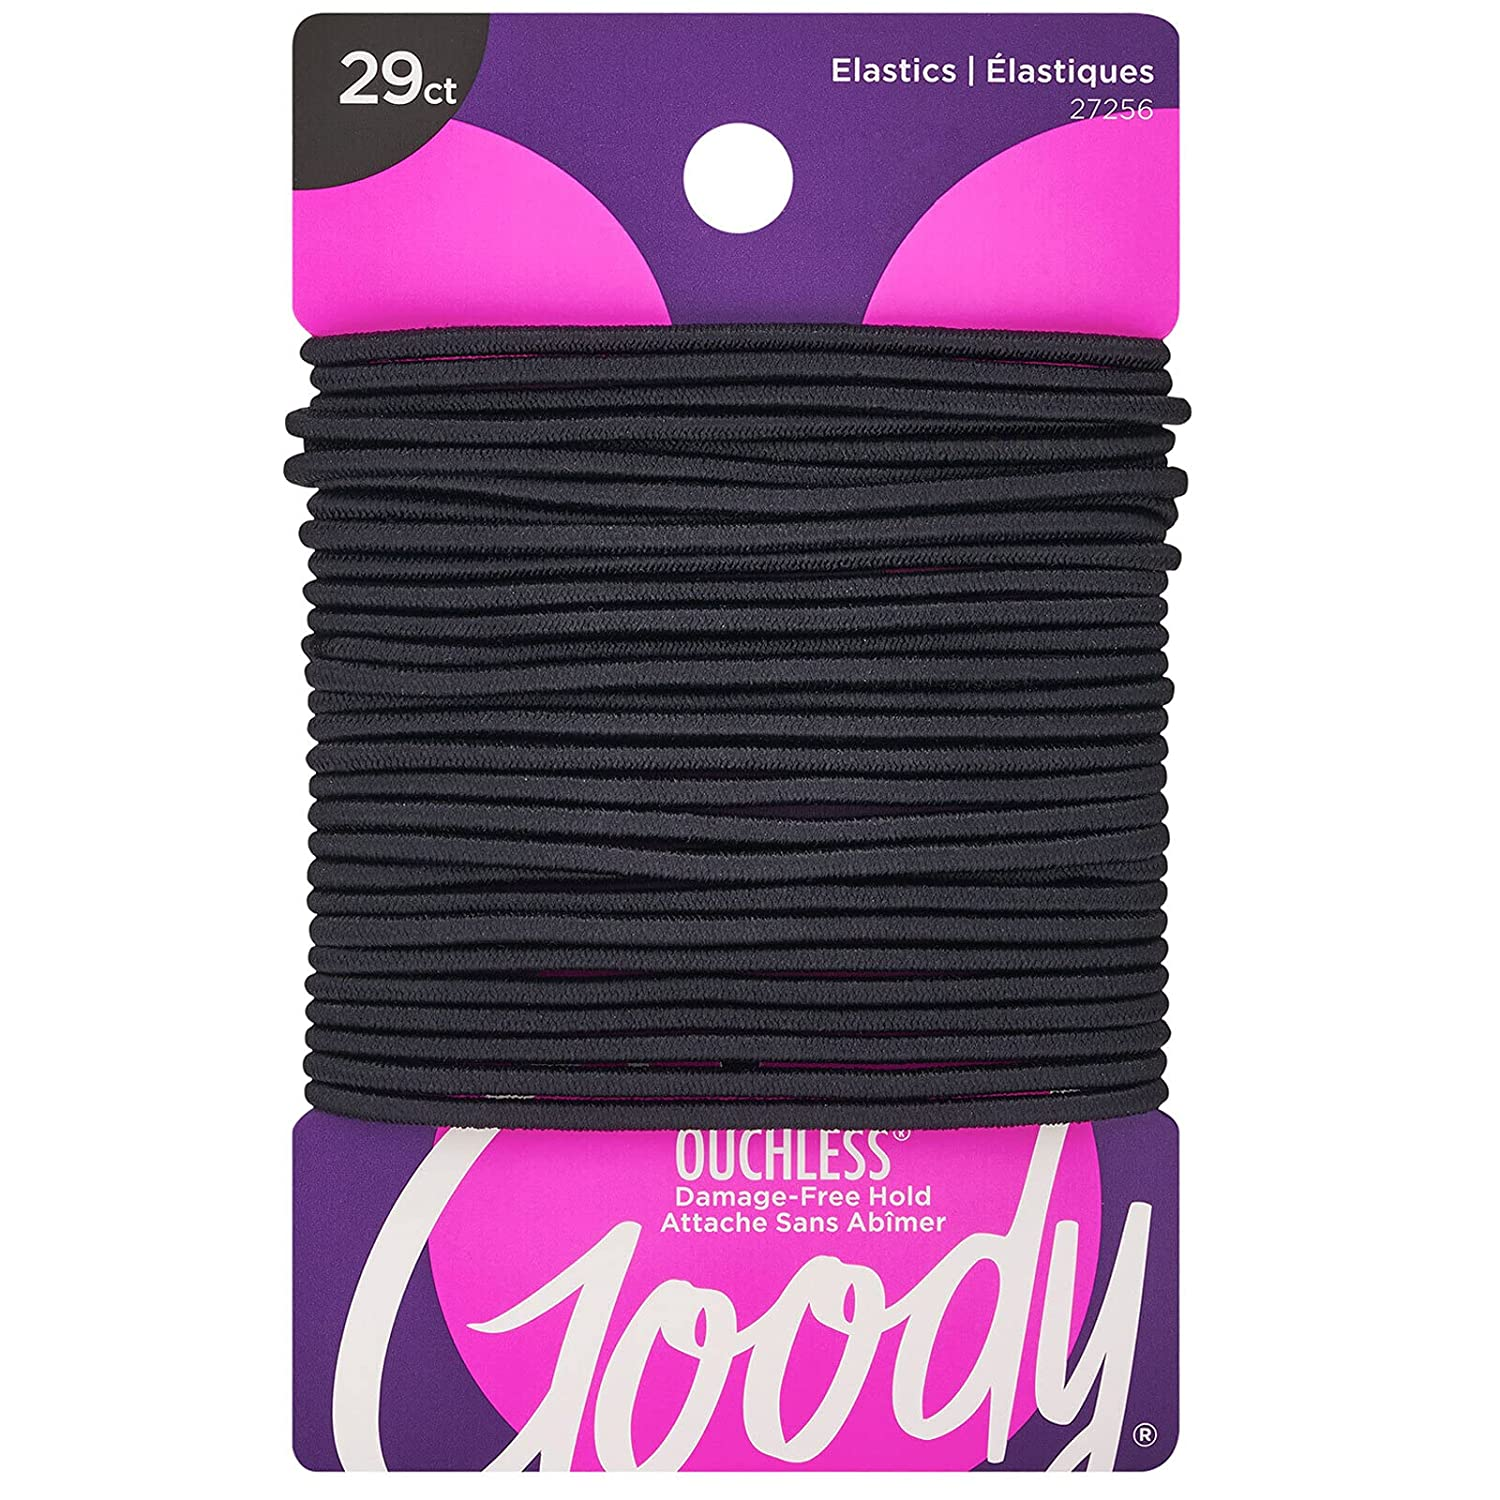 Goody Women's Limited price sale Ouchless 2 Washington Mall mm Elastics Black 29 Packaging Count